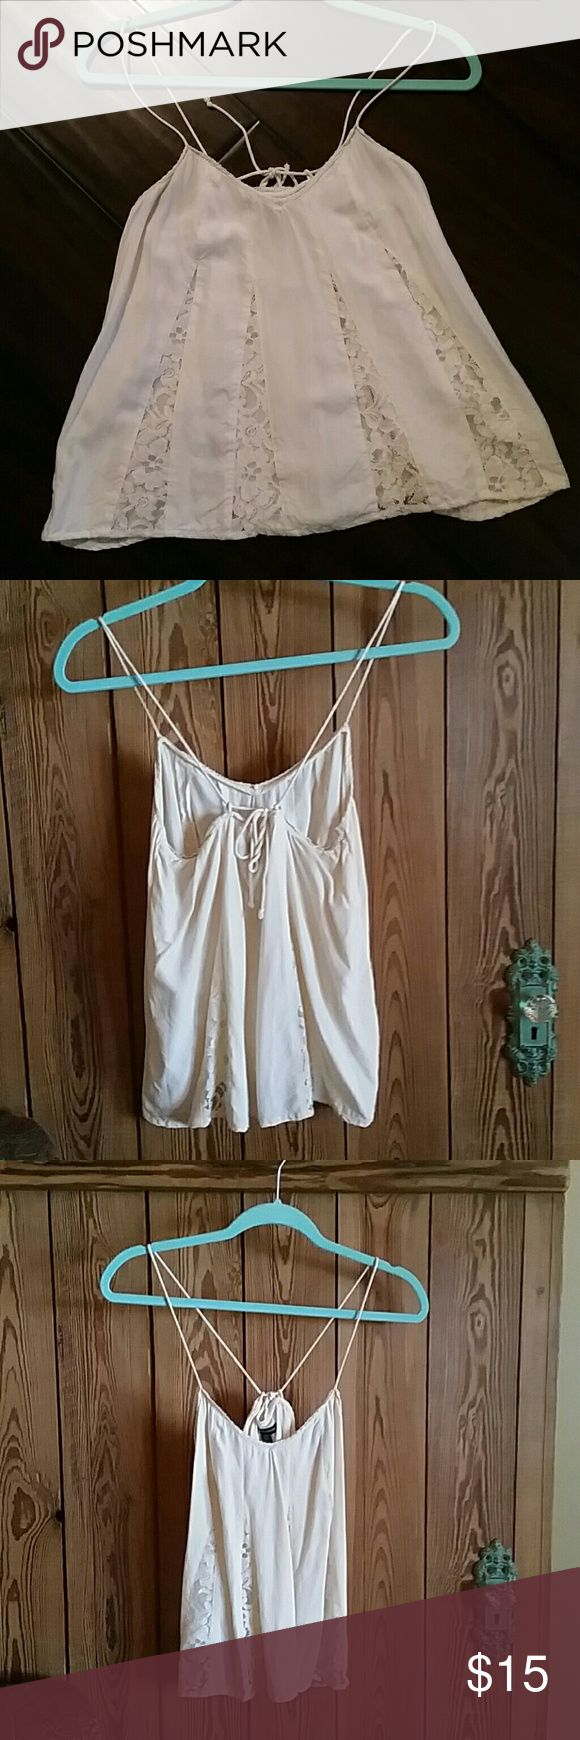 AEO cream strappy top Cream with lace insets. Straps tie in back and allow for adjusting how high or low the neckline is. Worn twice. Perfect condition! American Eagle Outfitters Tops